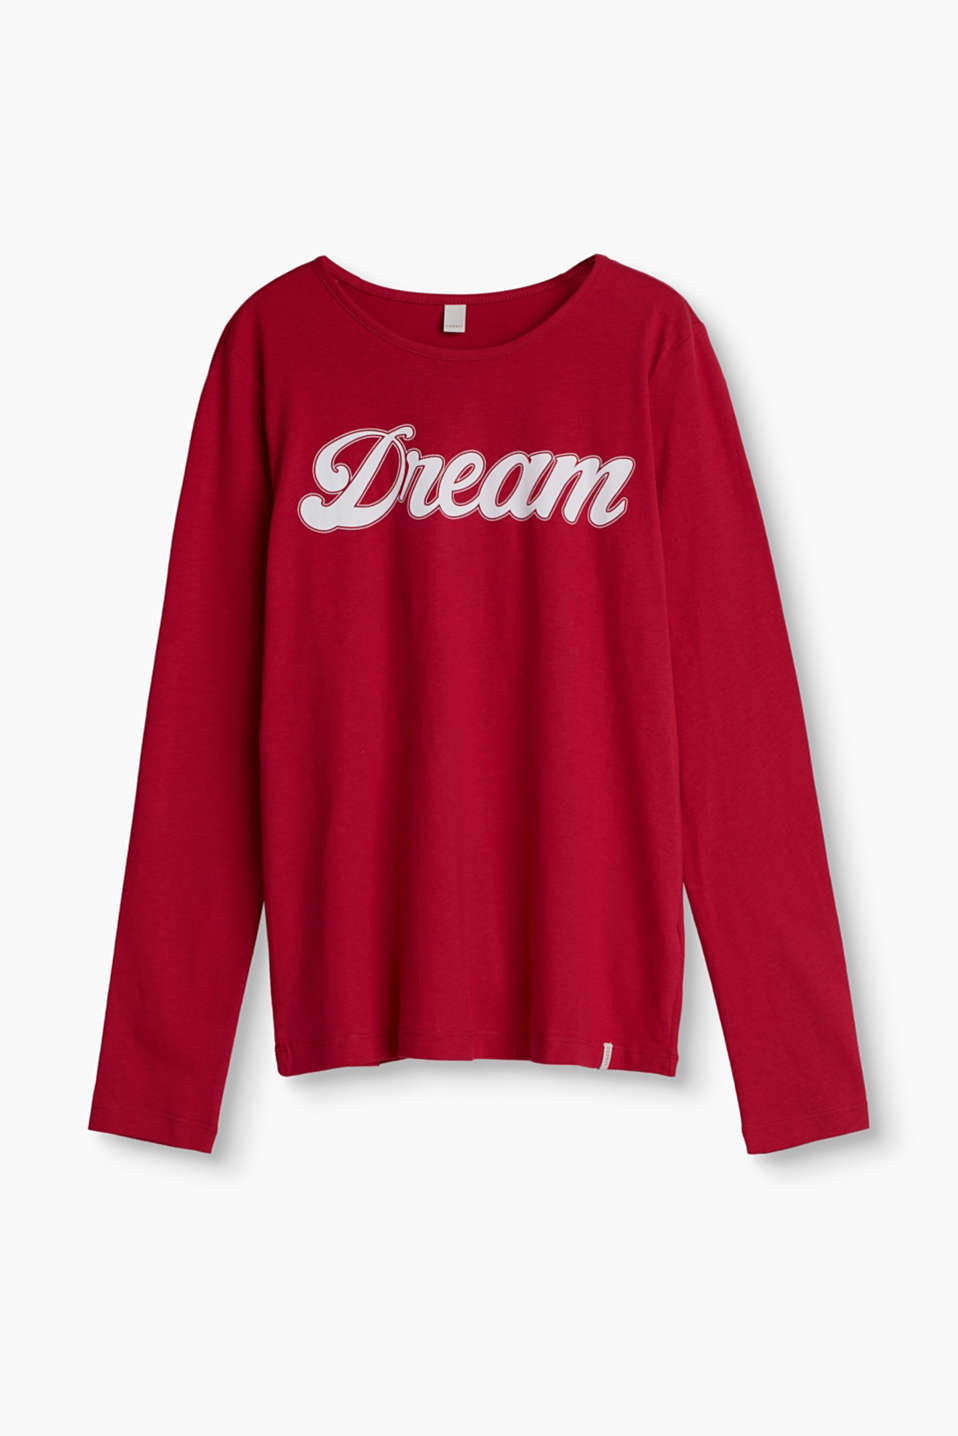 DREAM – long sleeve top in soft cotton jersey with a statement print